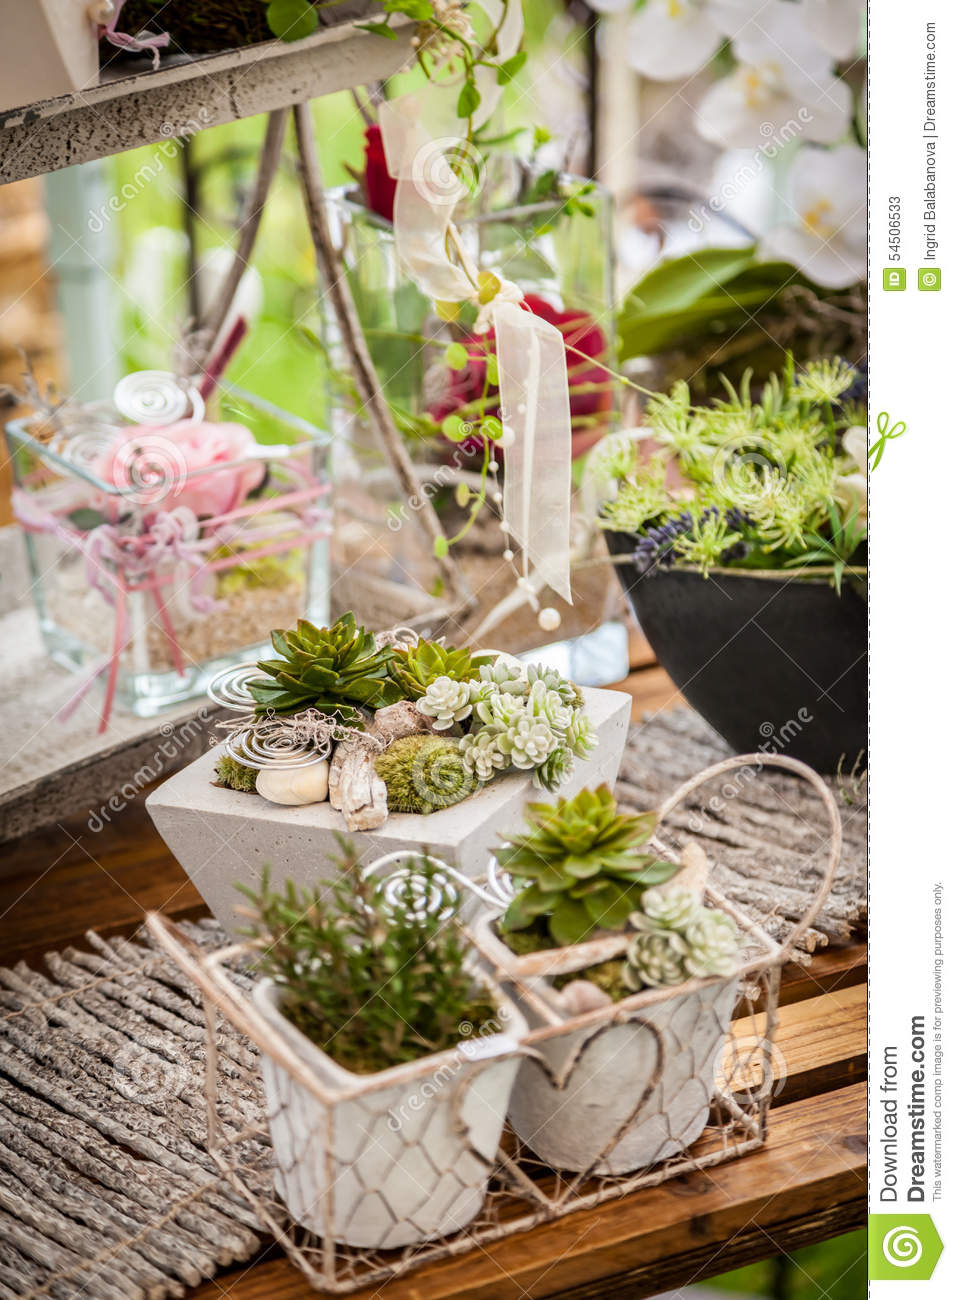 Garden decoration shabby chic style stock image image for Decoration jardin shabby